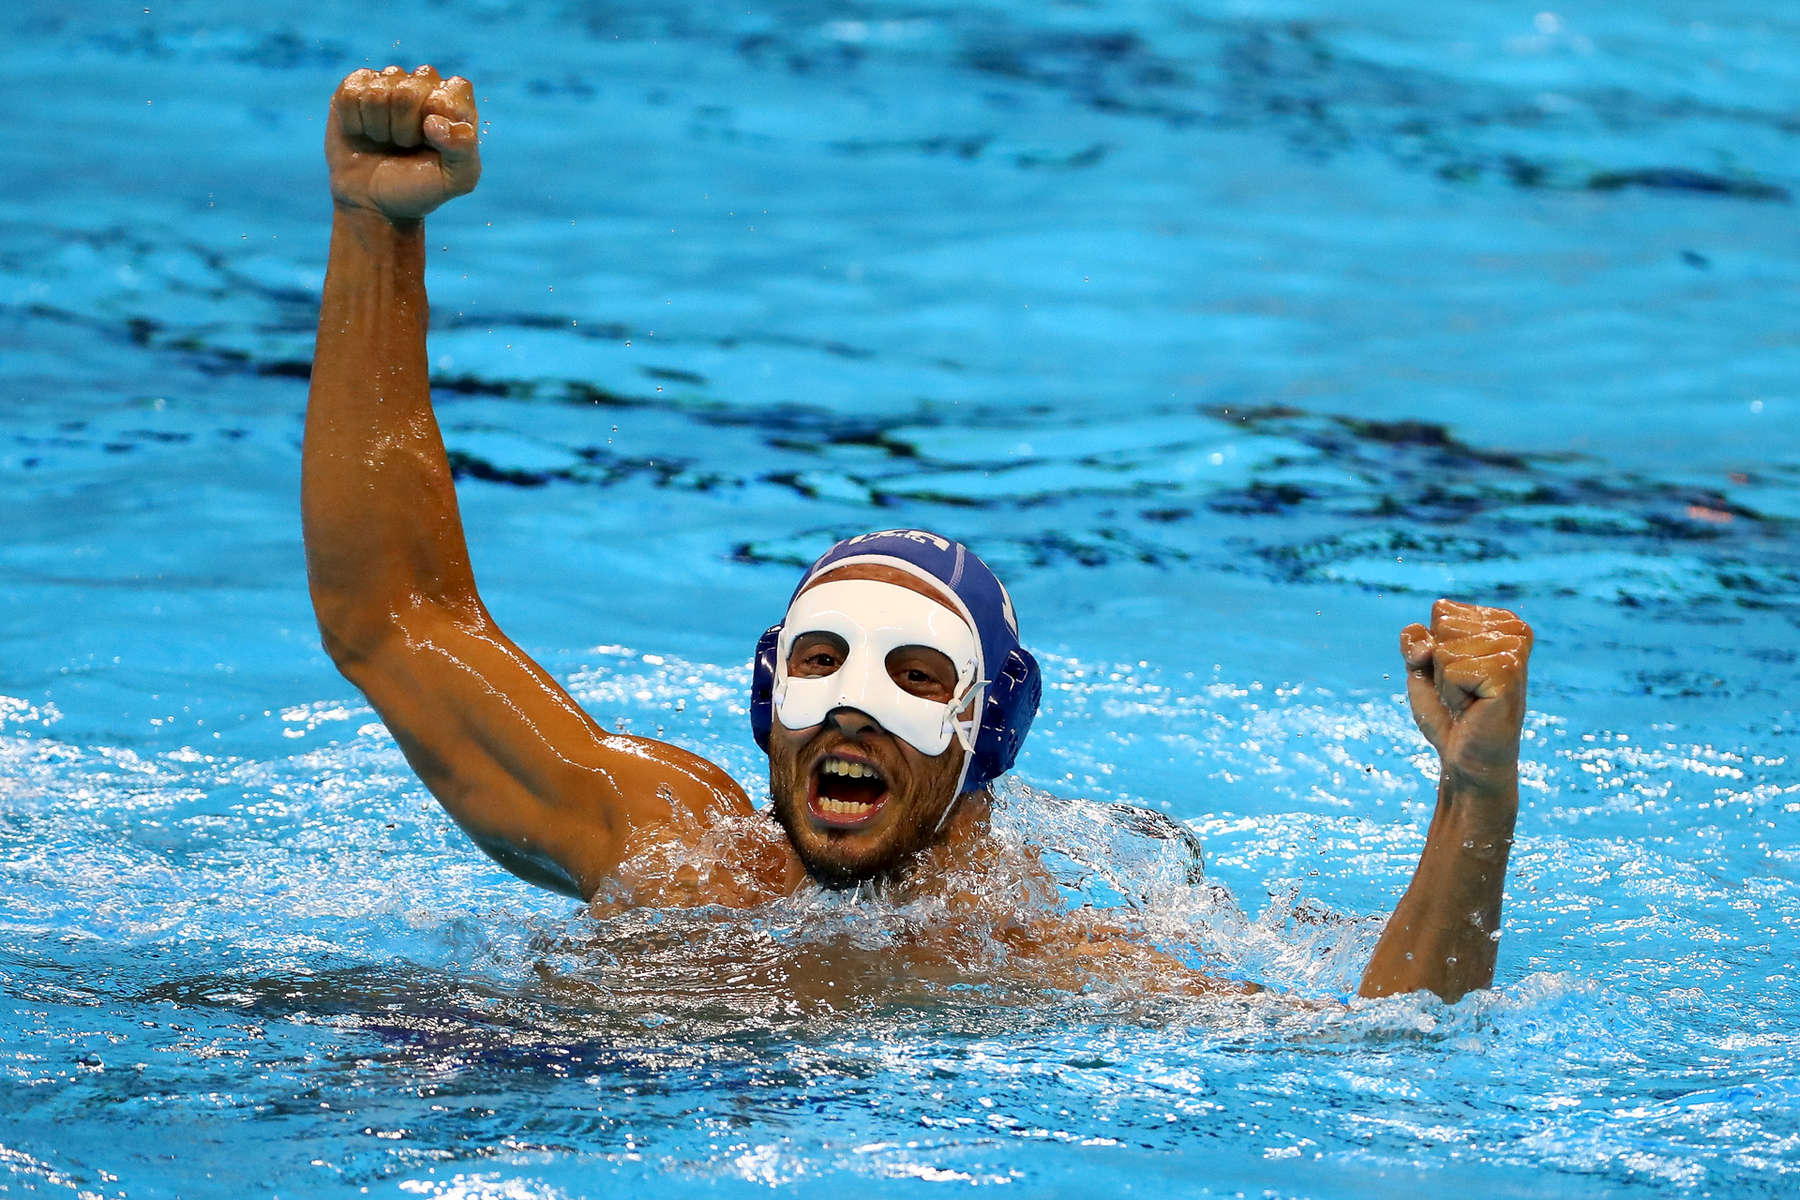 Matteo Aicardi #11 of Italy celebrates against Team Montenegro during their Men's Water Polo Bronze medal match on Day 15 of the Rio 2016 Olympic Games at the Olympic Aquatics Stadium on August 20, 2016 in Rio de Janeiro, Brazil.